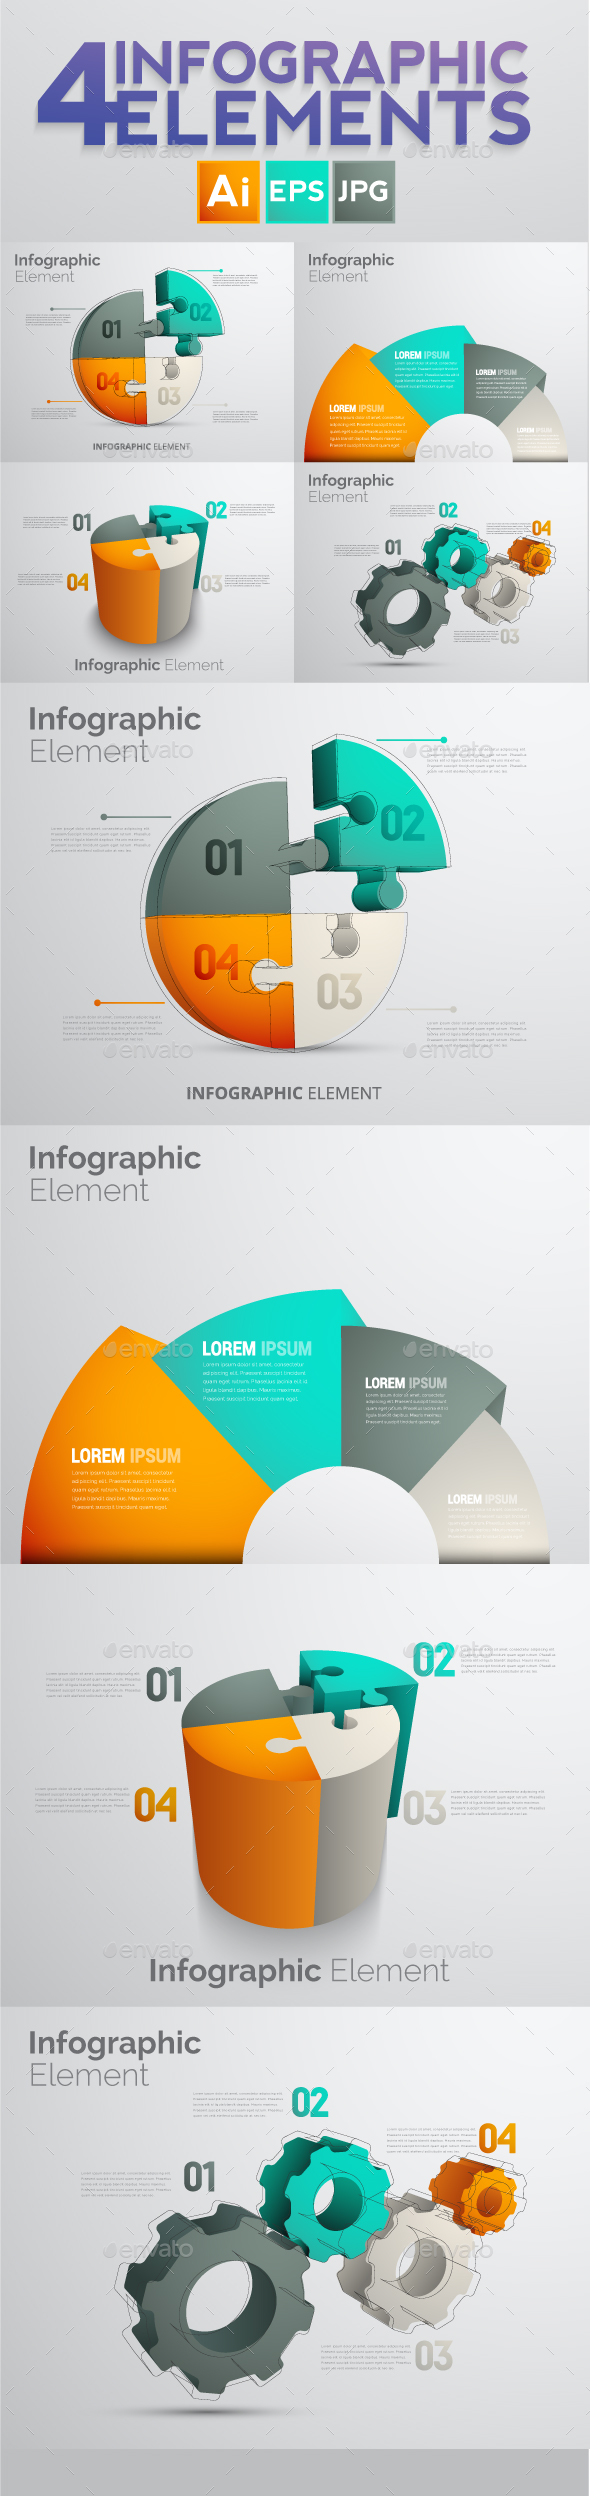 Set of 4 Infographic Elements Templates - 2 - Infographics